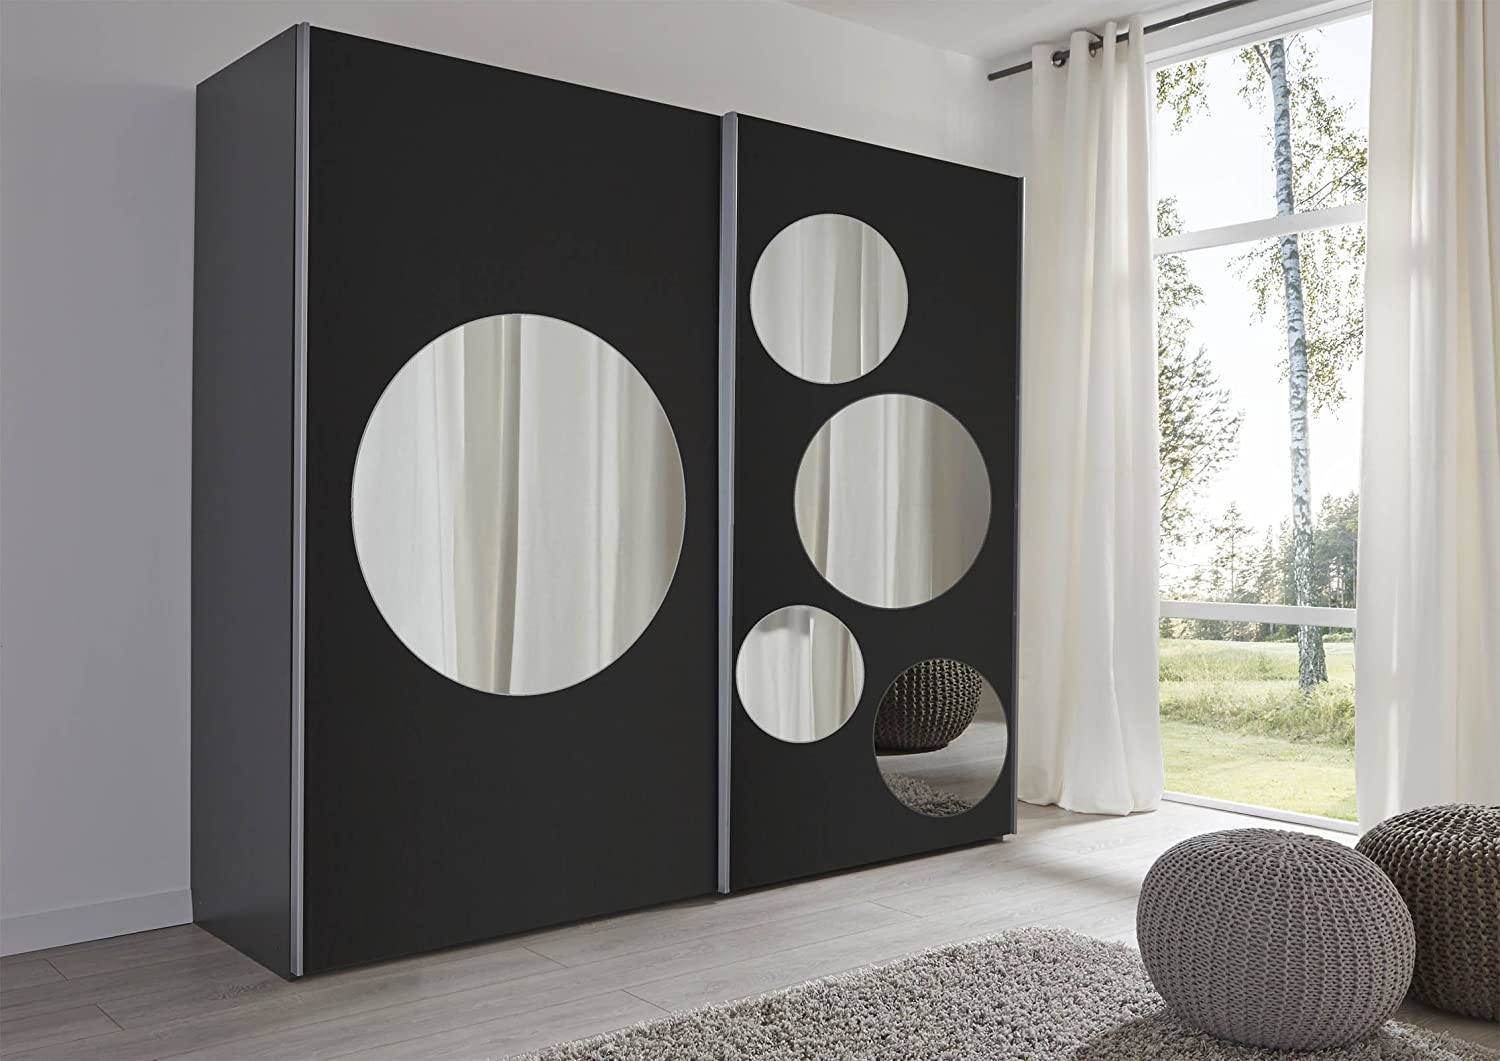 Schlafzimmer spott: black sliding door wardrobe with mirror spots ...